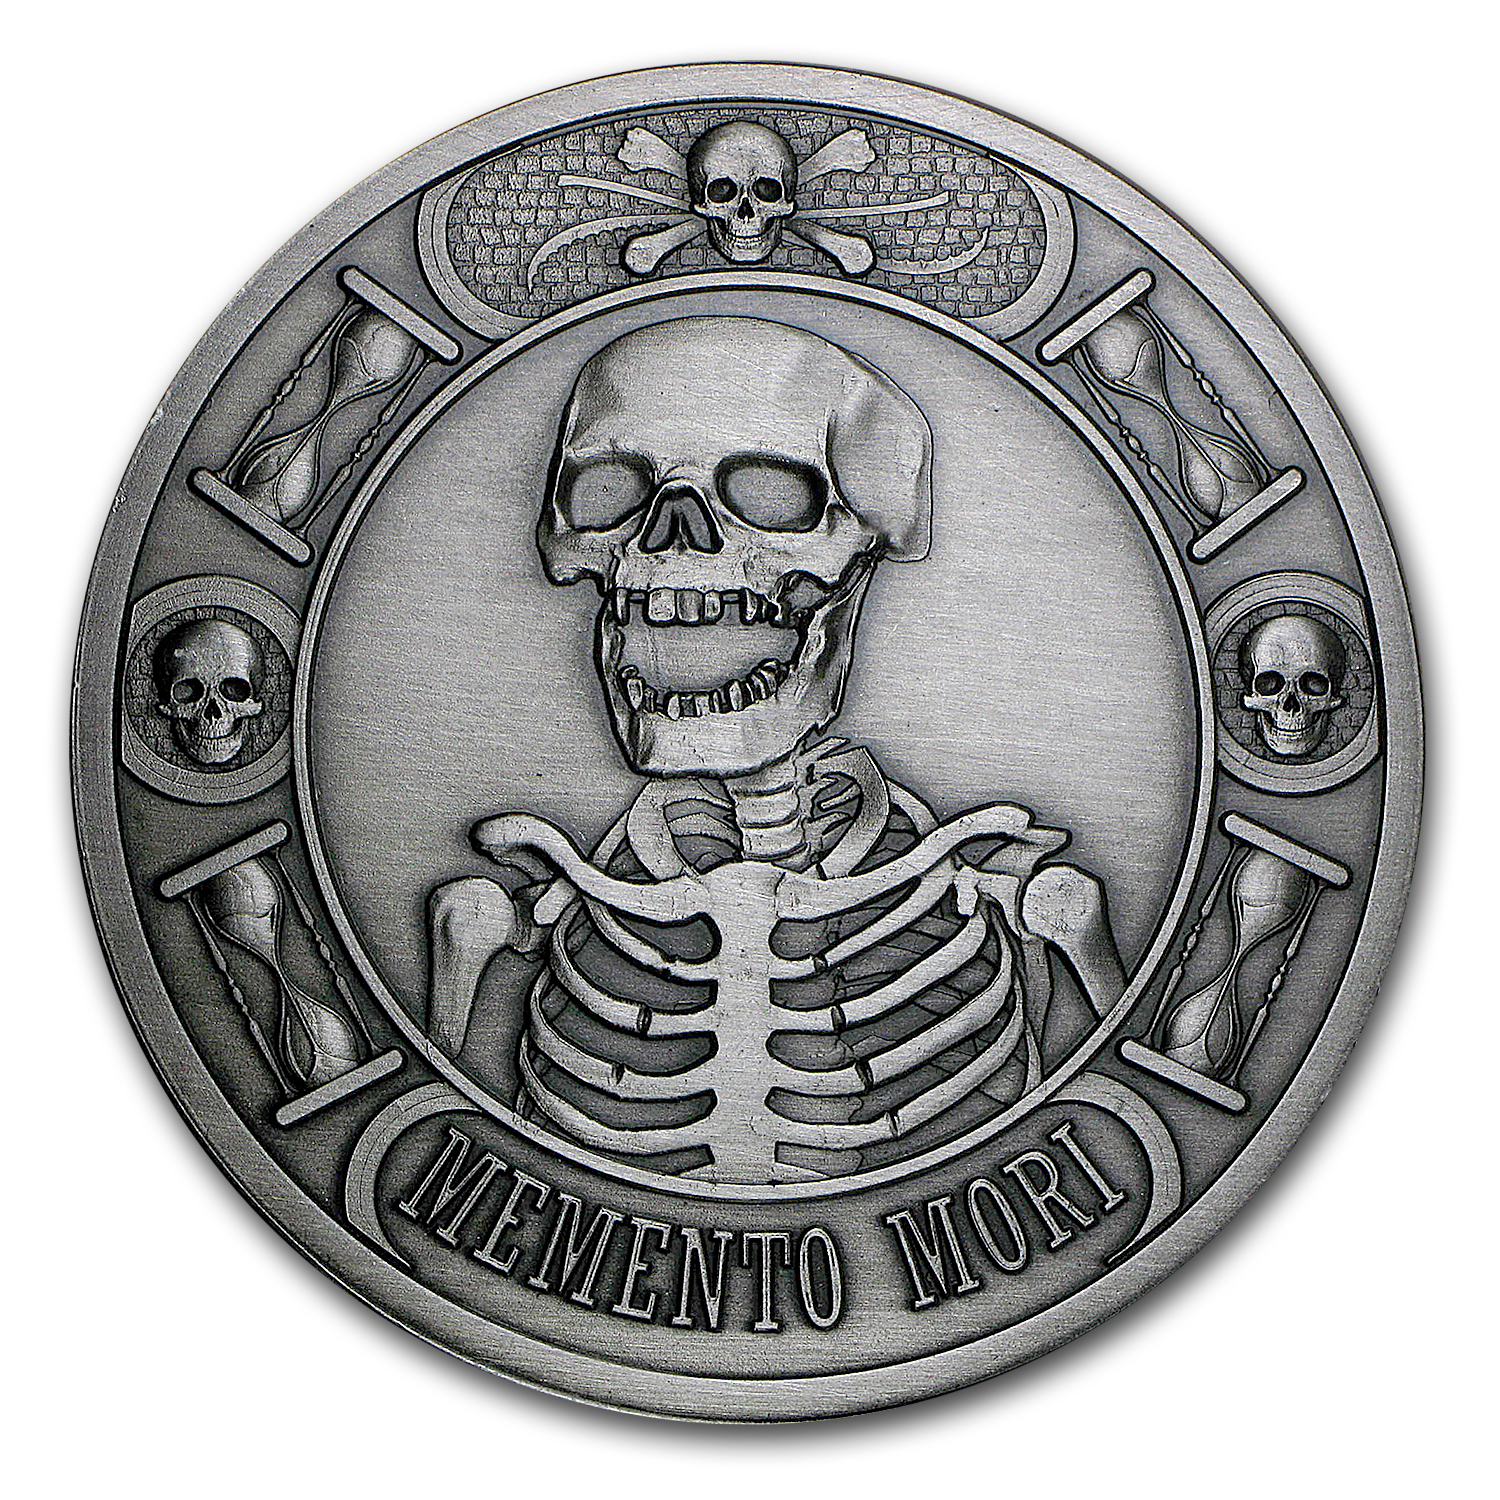 5 oz Silver Round - Memento Mori (Antique Finish)